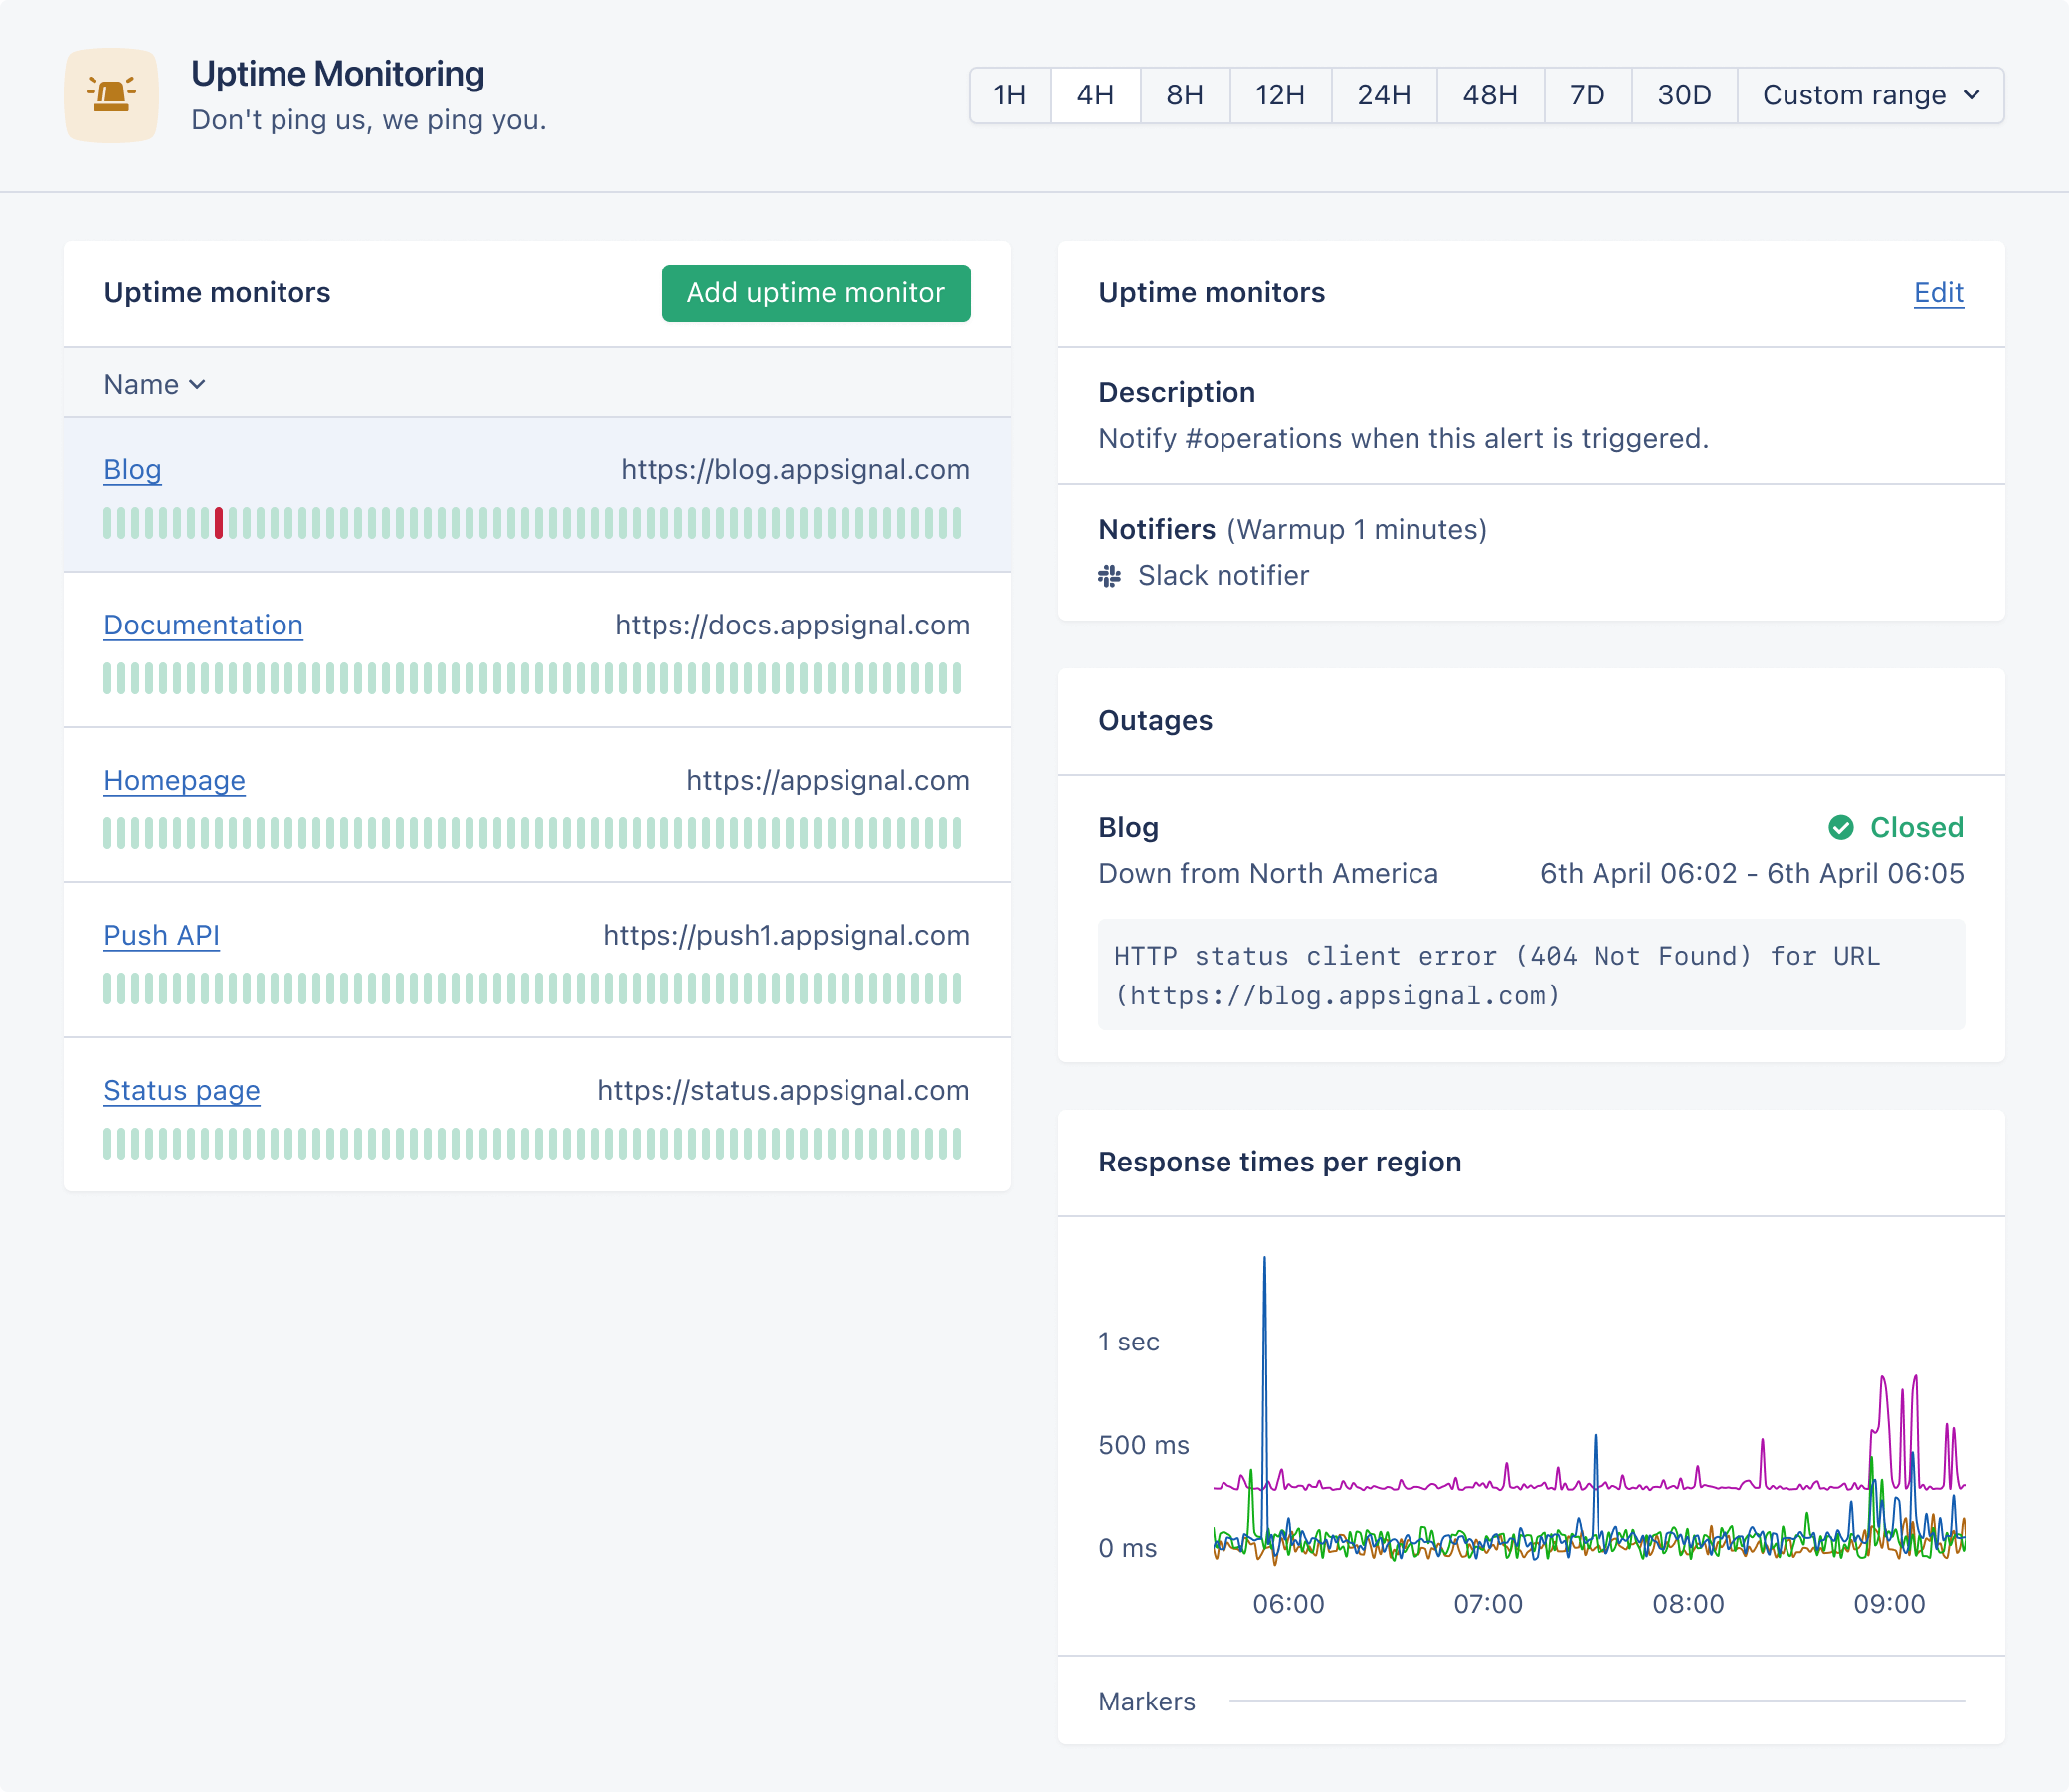 Screenshot of uptime monitoring page